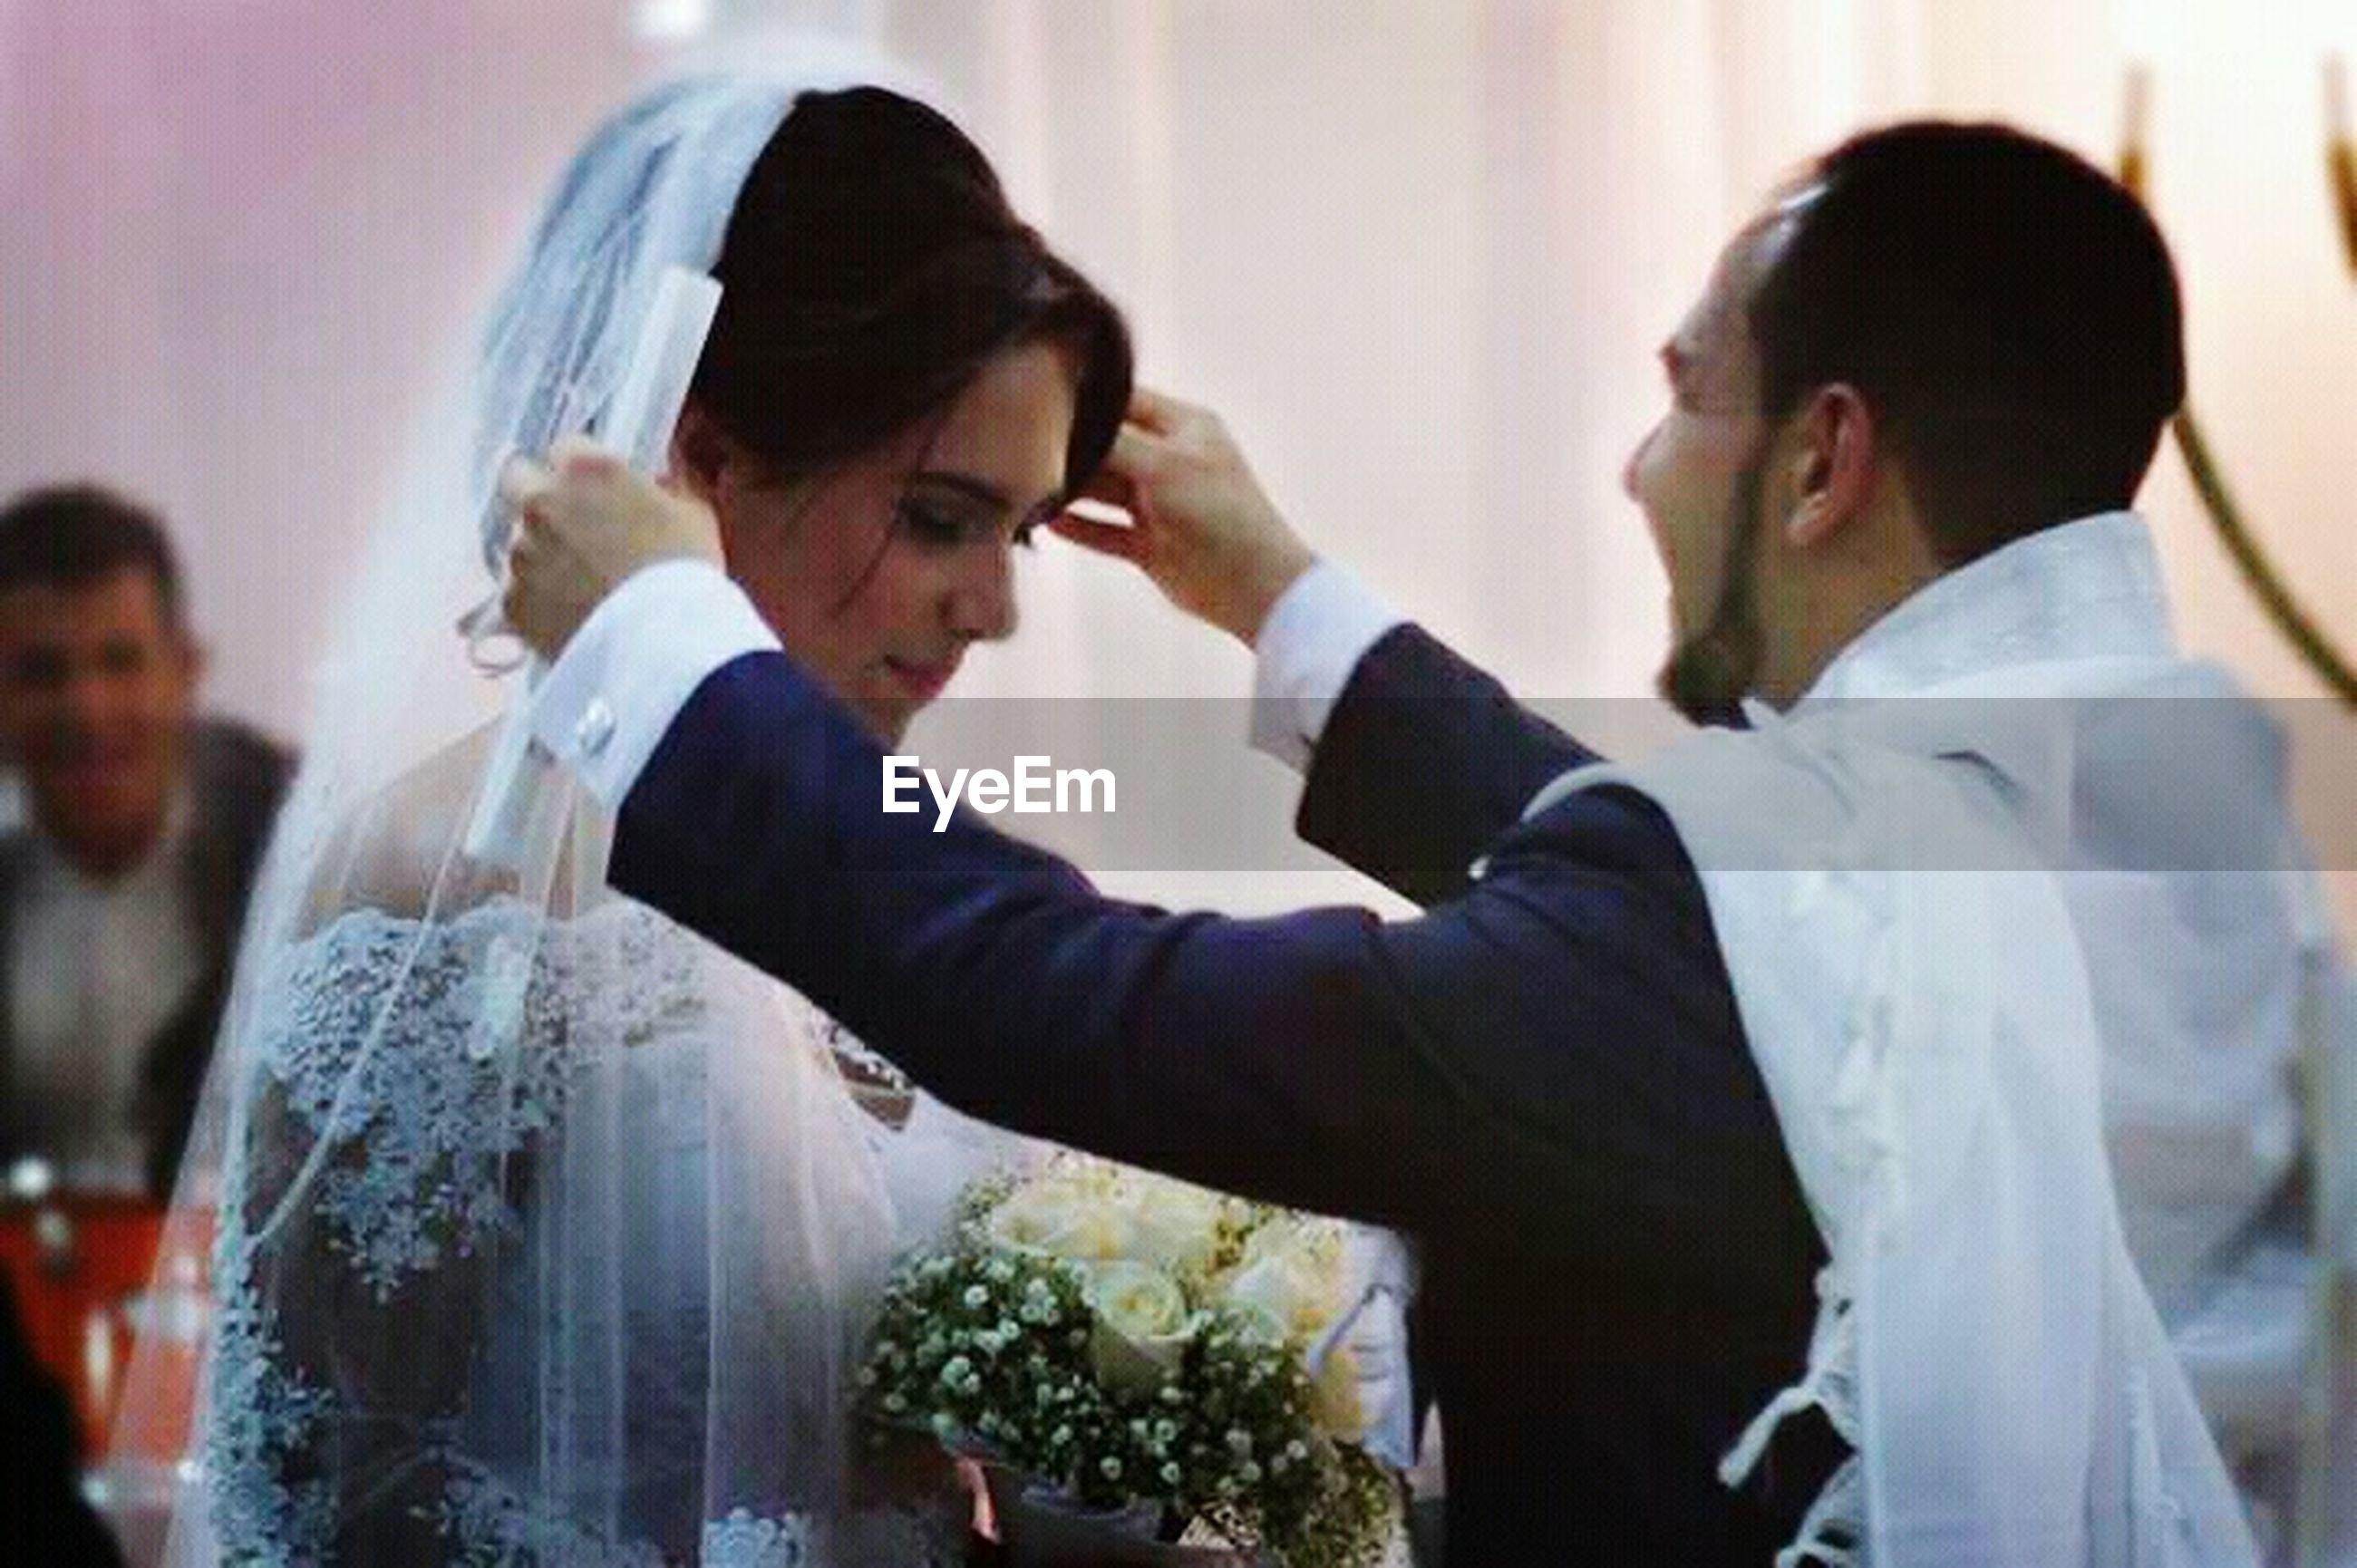 wedding, bride, bridegroom, celebration, wedding ceremony, wedding dress, life events, indoors, women, ceremony, well-dressed, veil, men, two people, wife, husband, adults only, celebration event, adult, standing, suit, married, people, young adult, day, togetherness, young women, dedication, groom, close-up